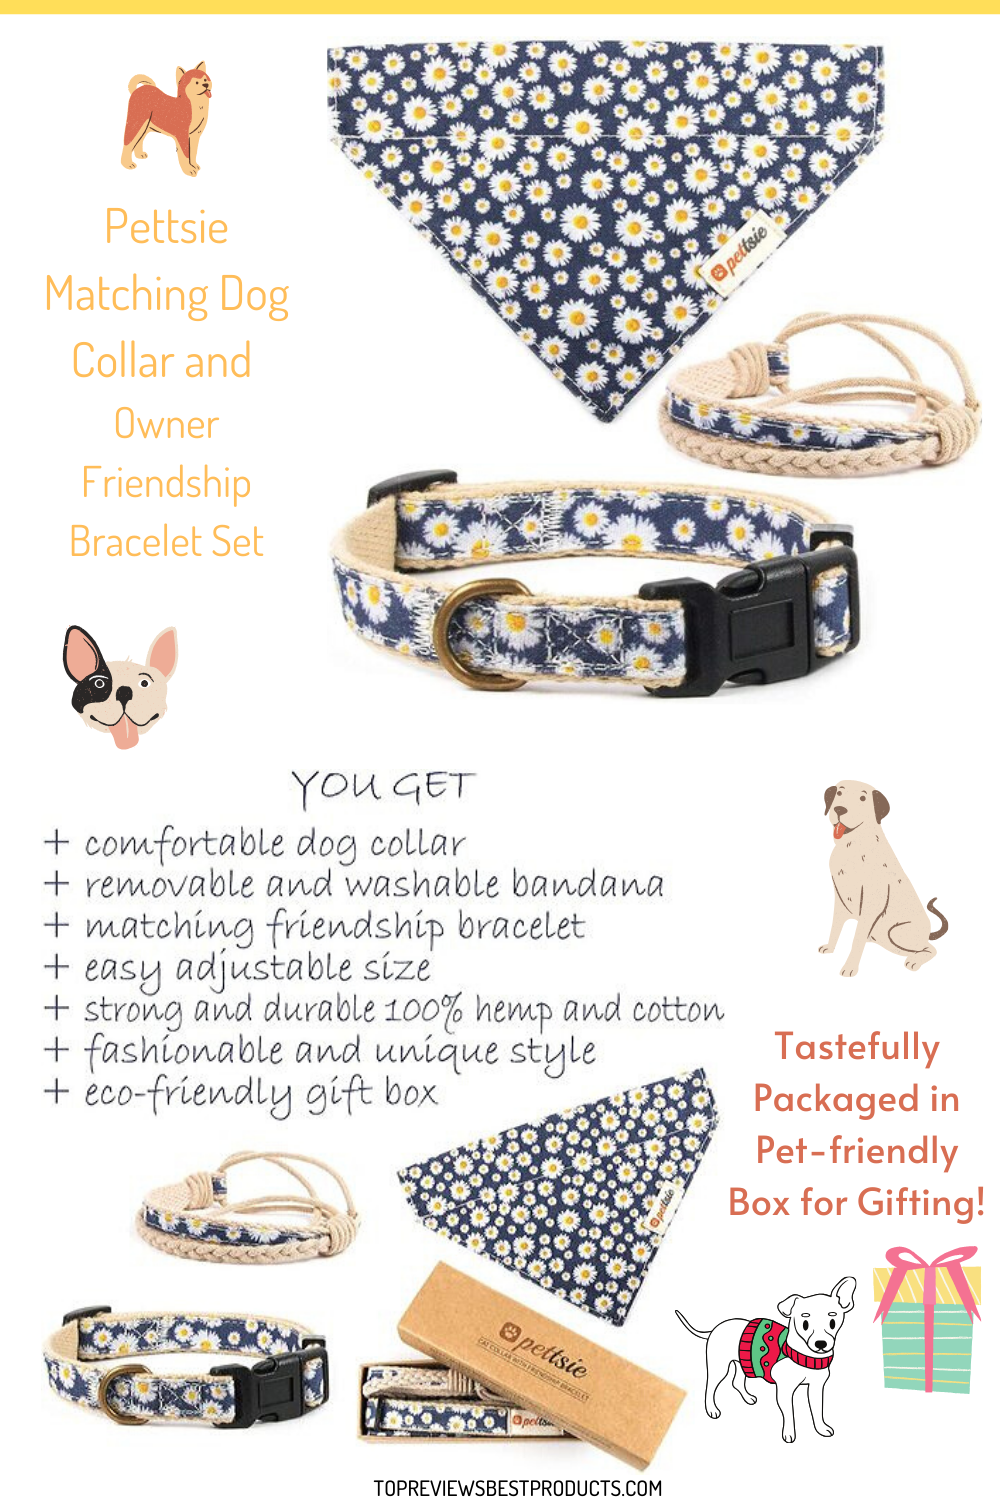 Slip on this chic, eye-catching accessory and feel connected to your best furifrend always and forever. #dog #doglovers #doggift #giftfordog #dogbirthdaygift #cutegiftfordoglovers #dogcollar #dogbandana #matchingfriendshipbracelet #dogloversgift #pooch #Dog #Pup #dogproducts #puppy #dogs #puppies #doggy #pooches #dogowner #ilovedogs #dogmom